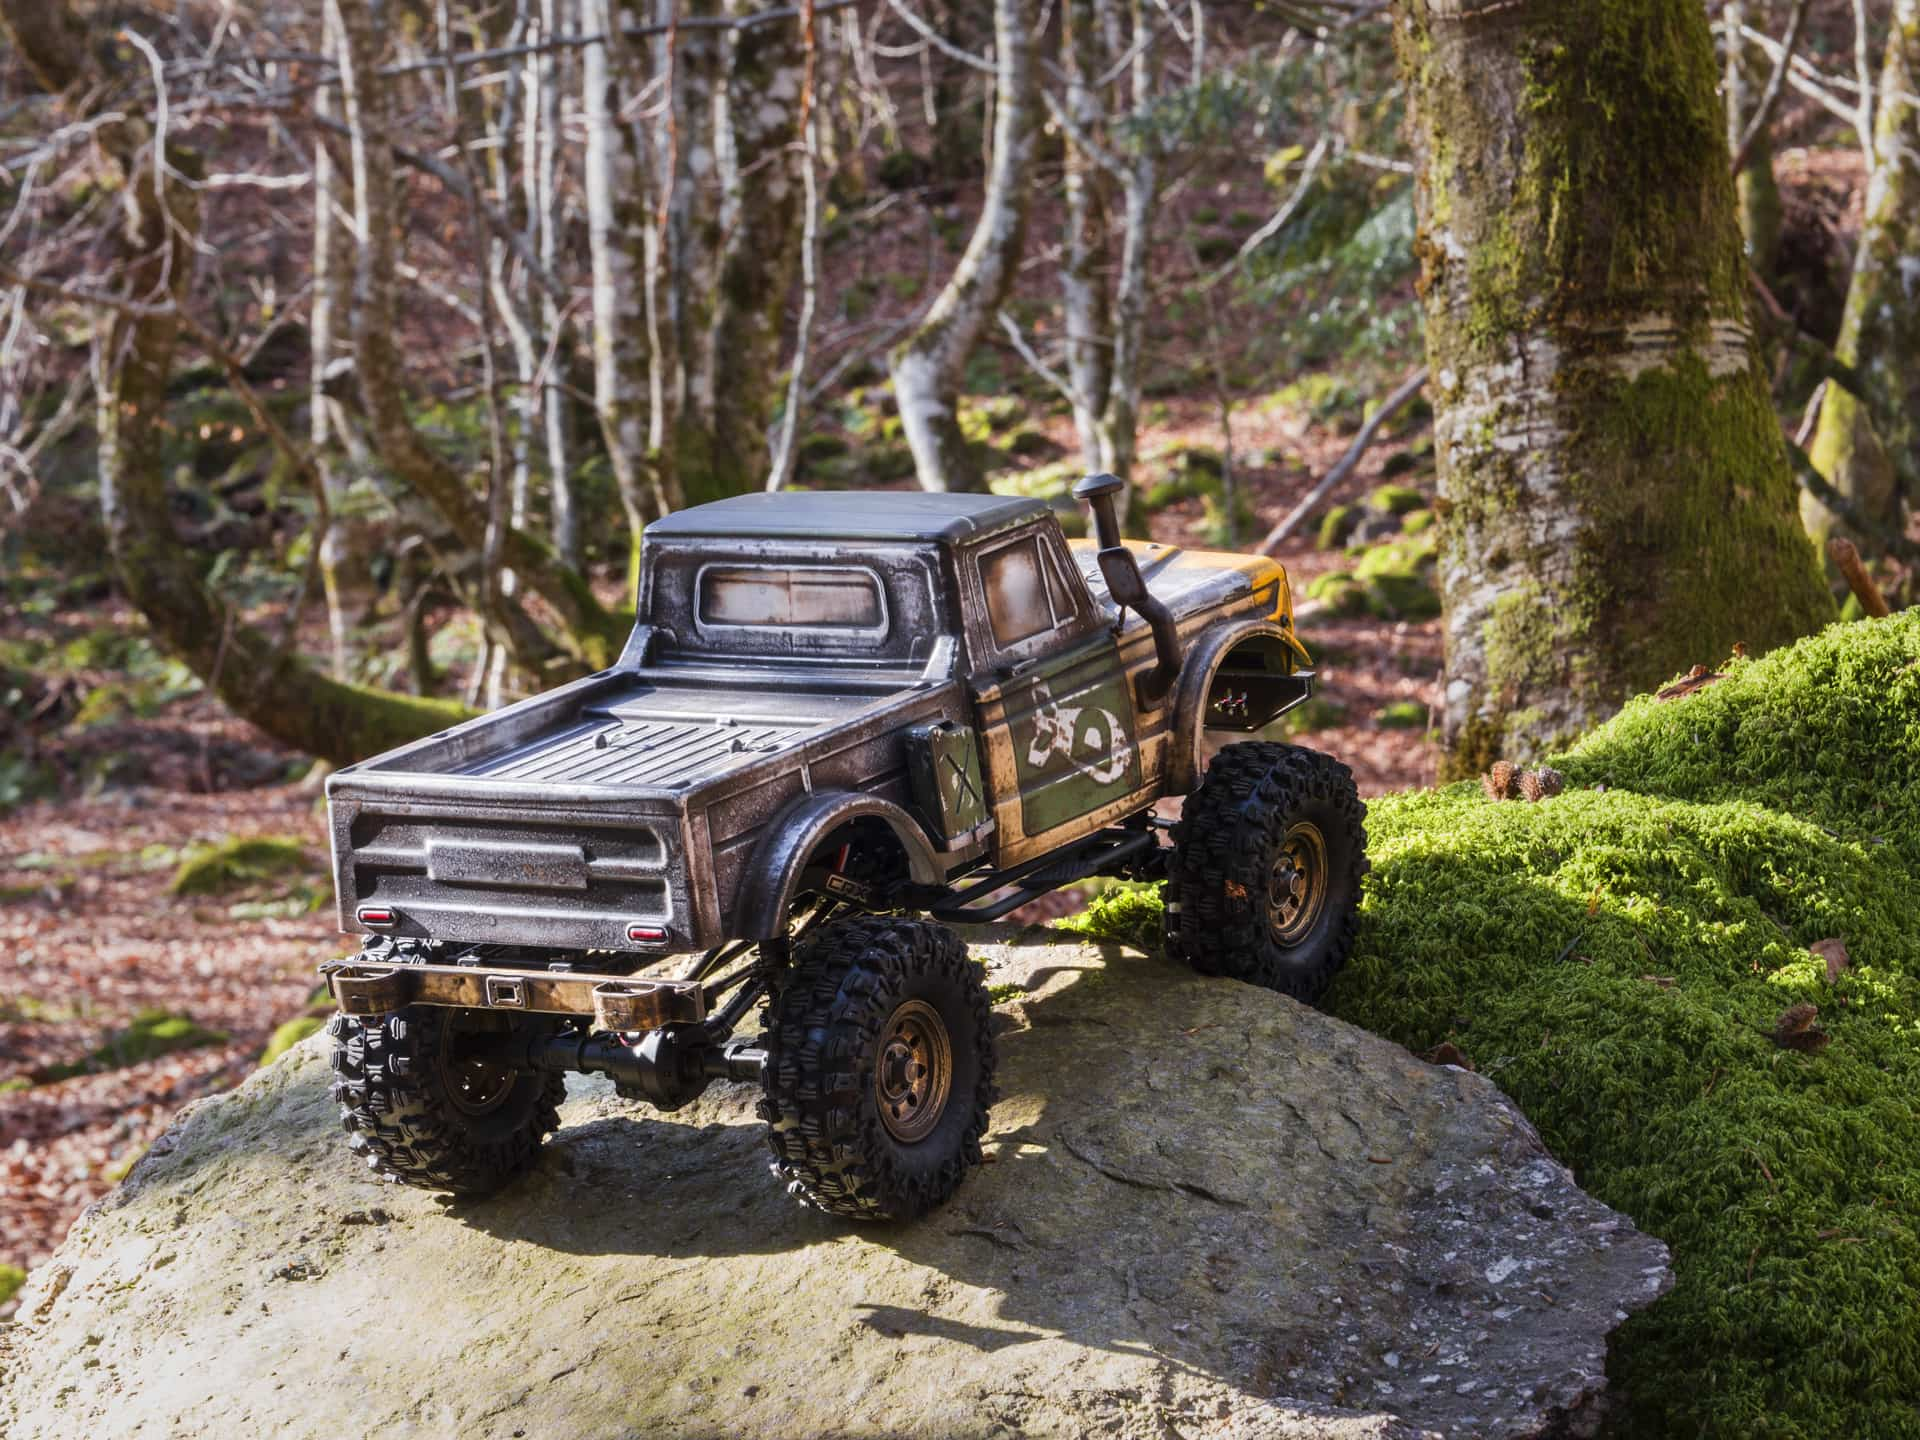 See it in Action: Hobbytech RC CRX Survival V2 Crawler